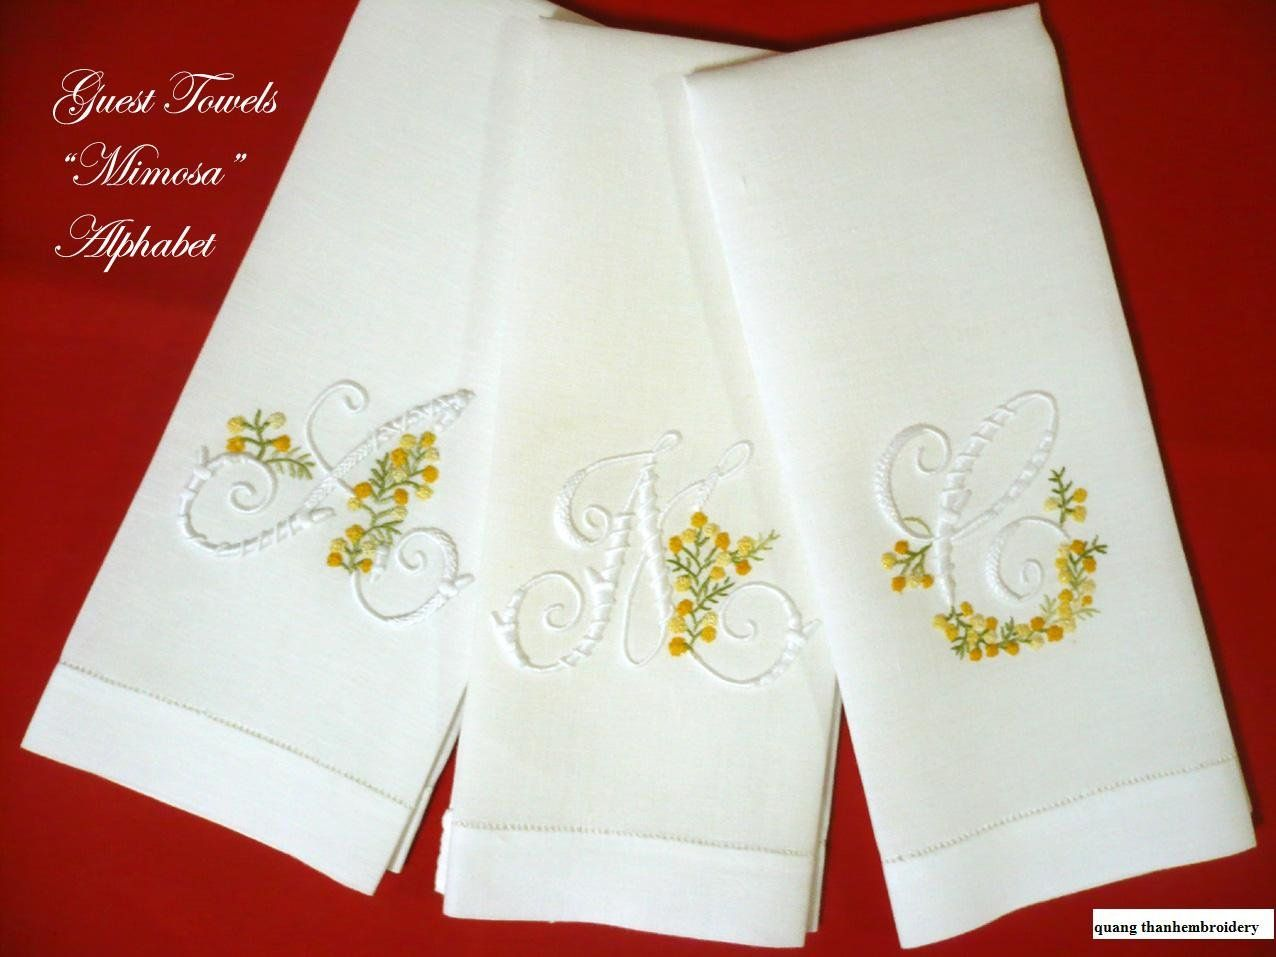 Embroidery victorian dish towels | Embroidery.com: Hand Towels ...